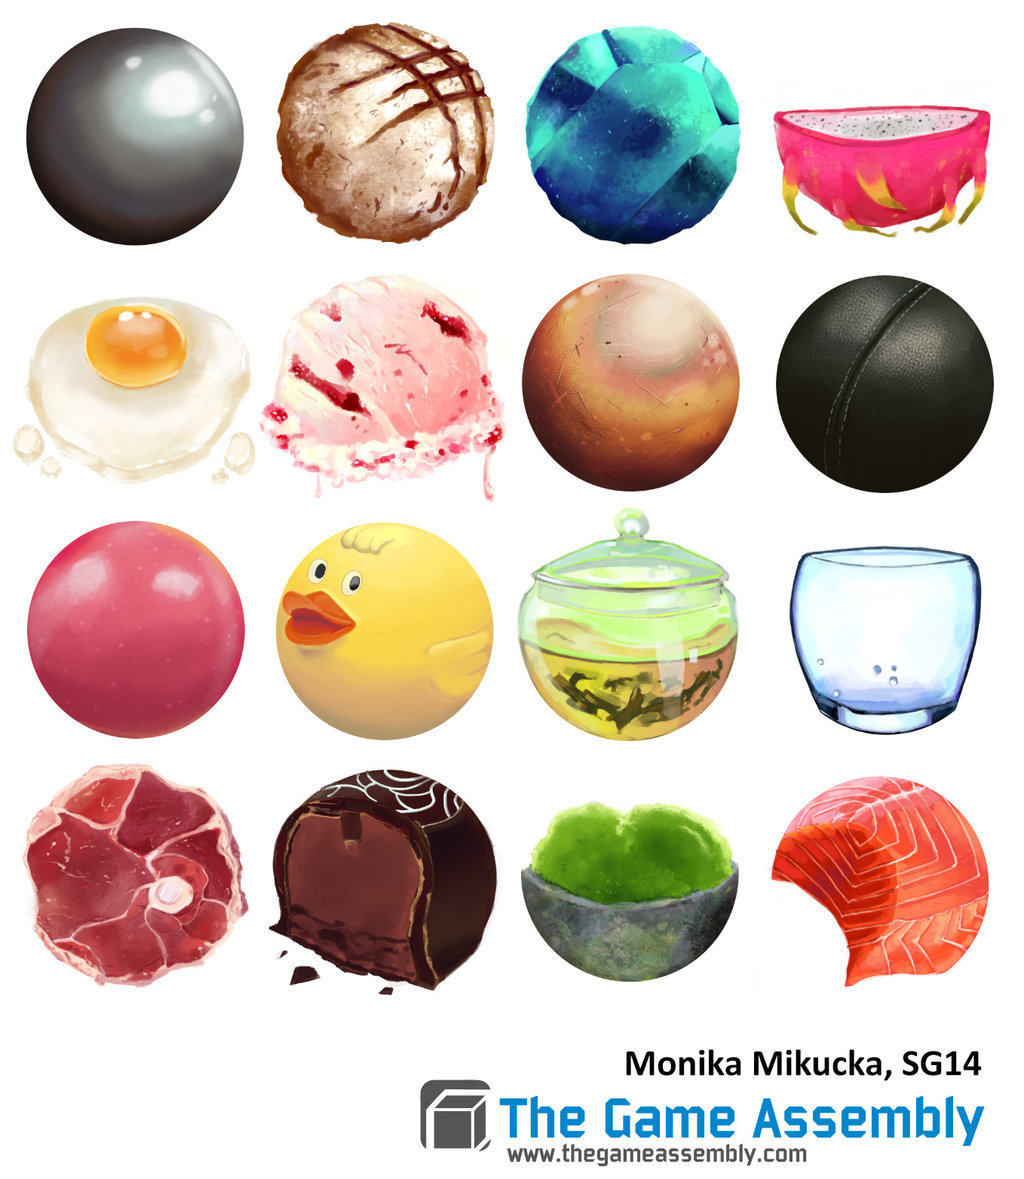 Monika mikucka material assignment by monkanponk d89z0lx